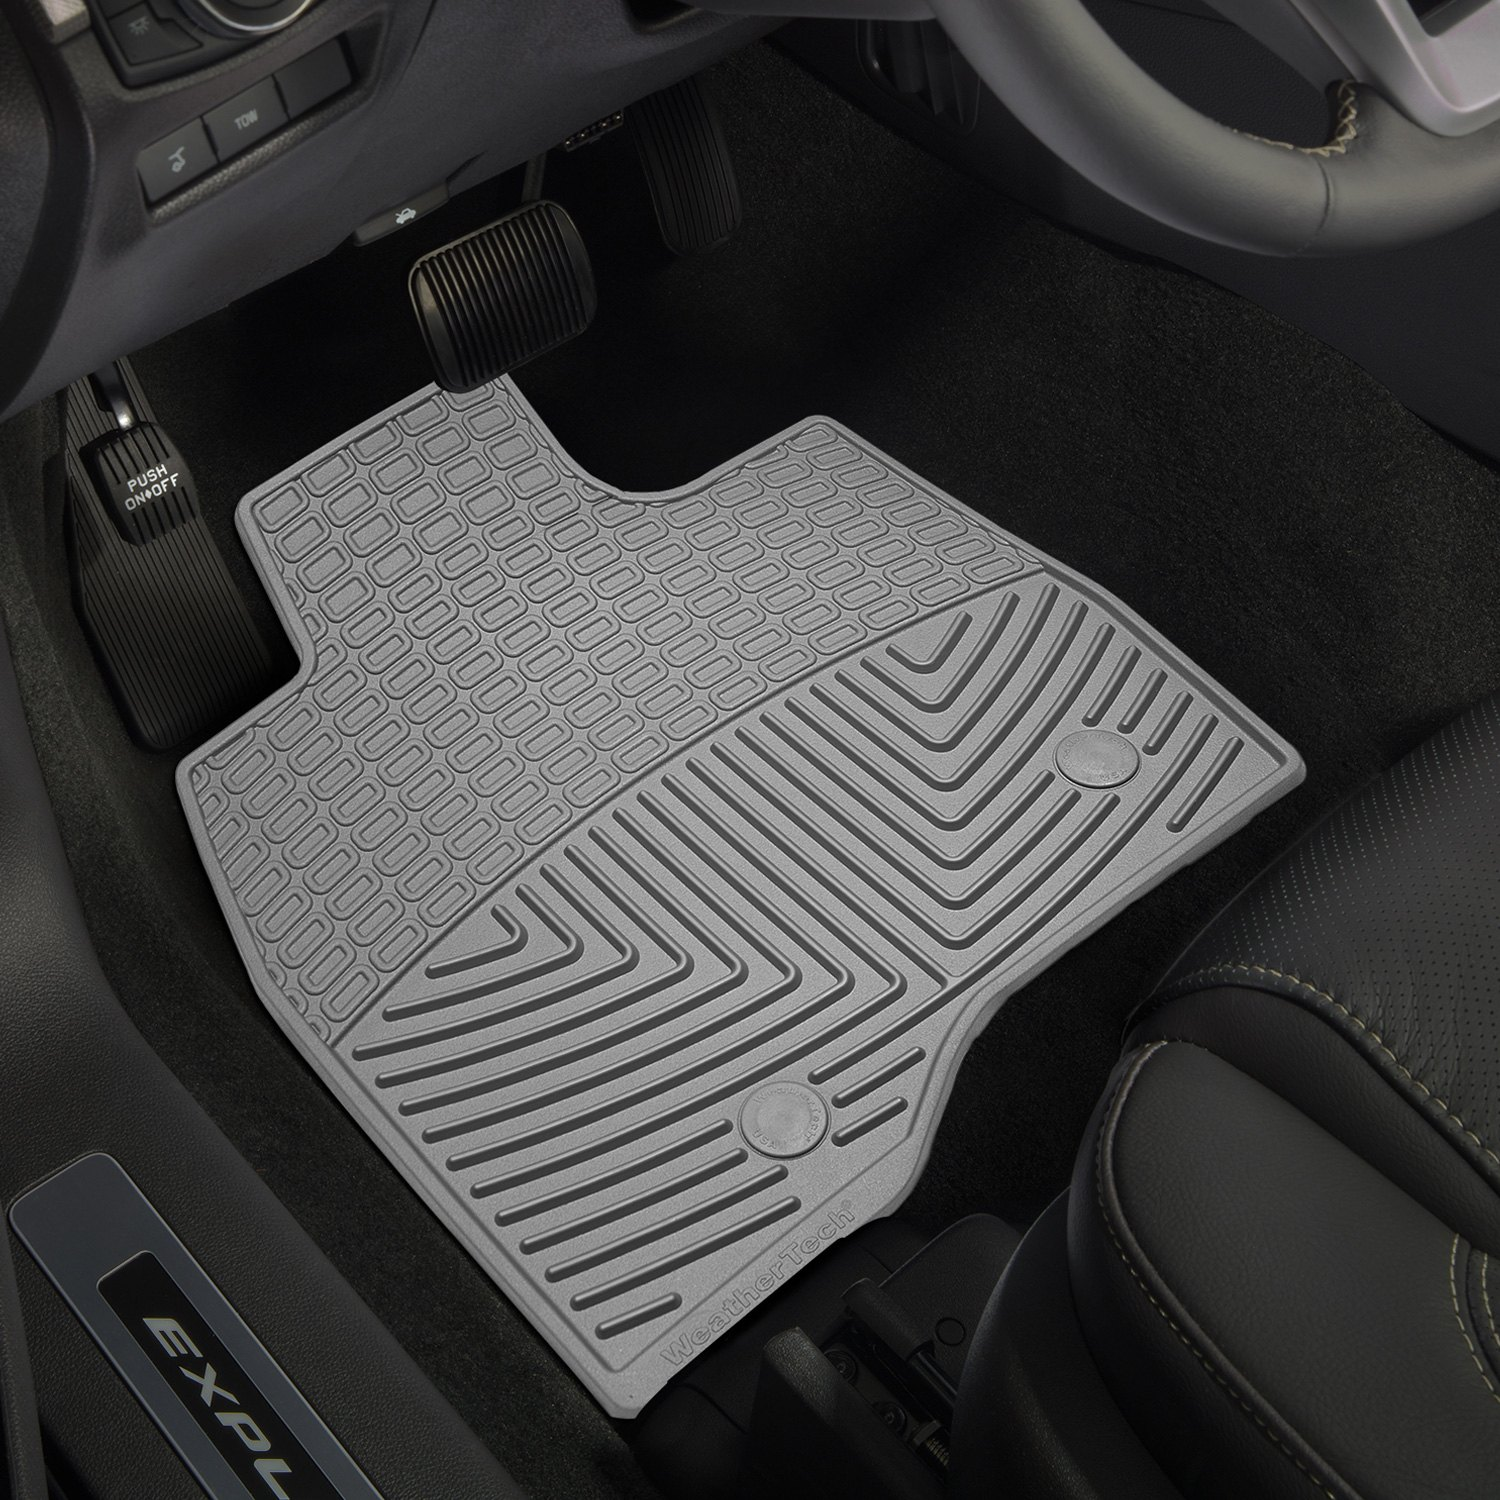 Weathertech all vehicle mats review - Weathertech 174 All Weather Floor Mats Gray Weathertech 174 All